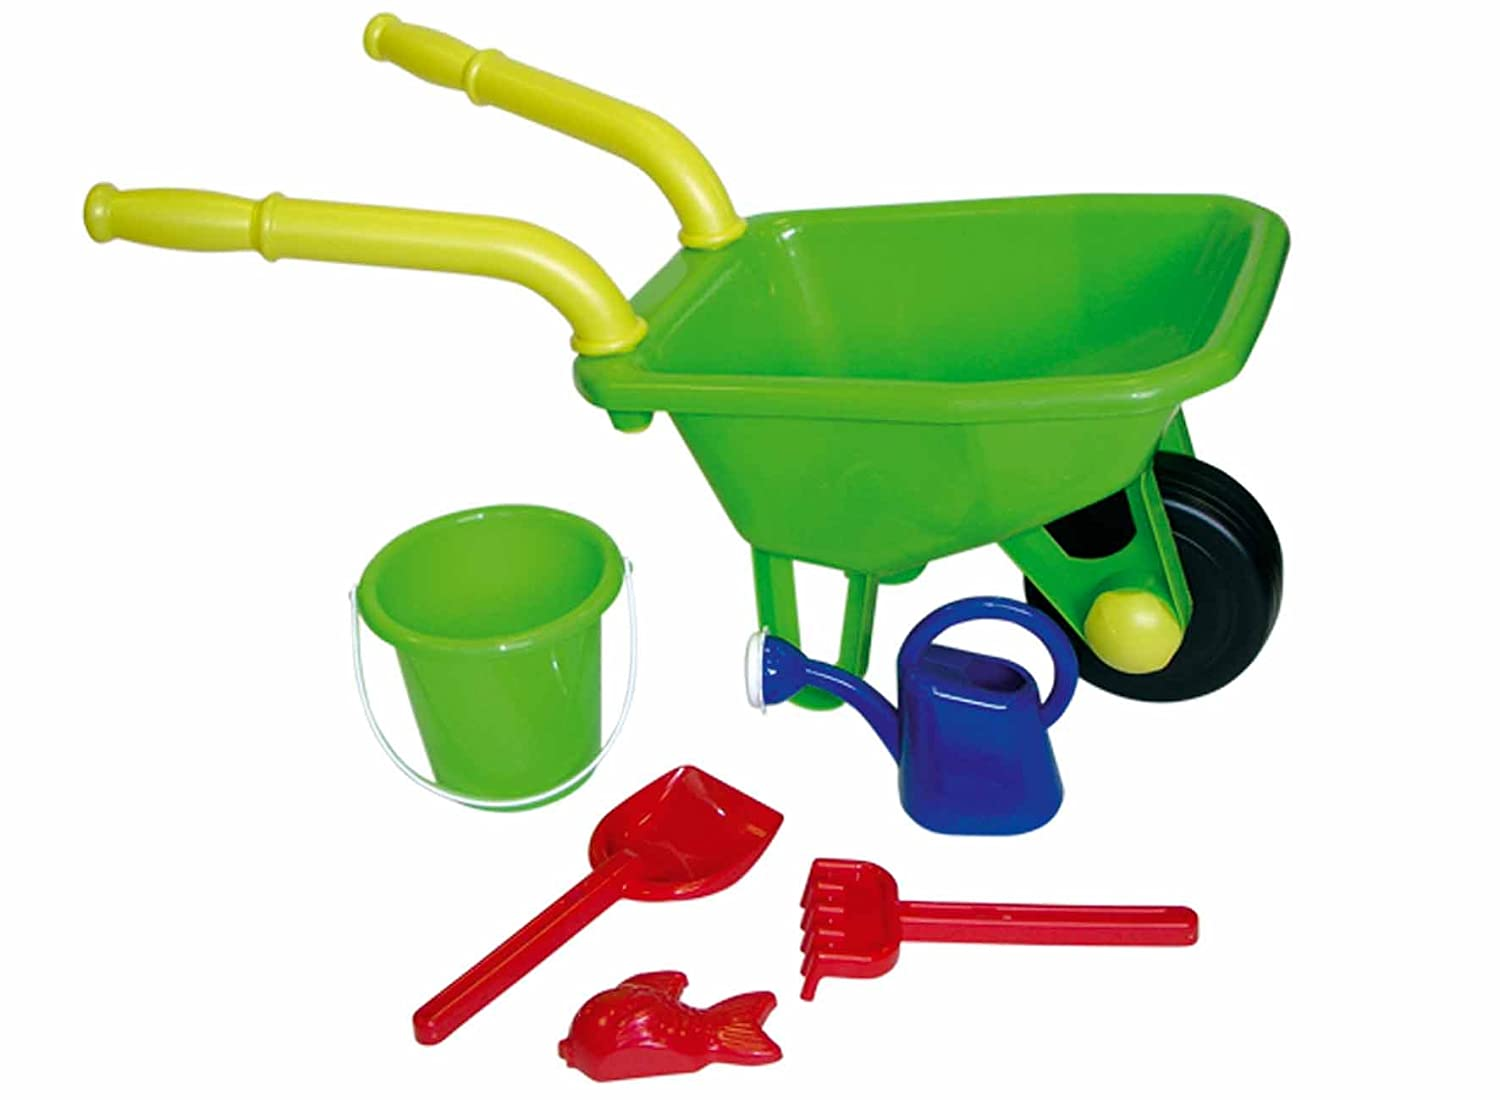 Kids childrens childs wheelbarrow gardening tools play set for Gardening tools toddlers